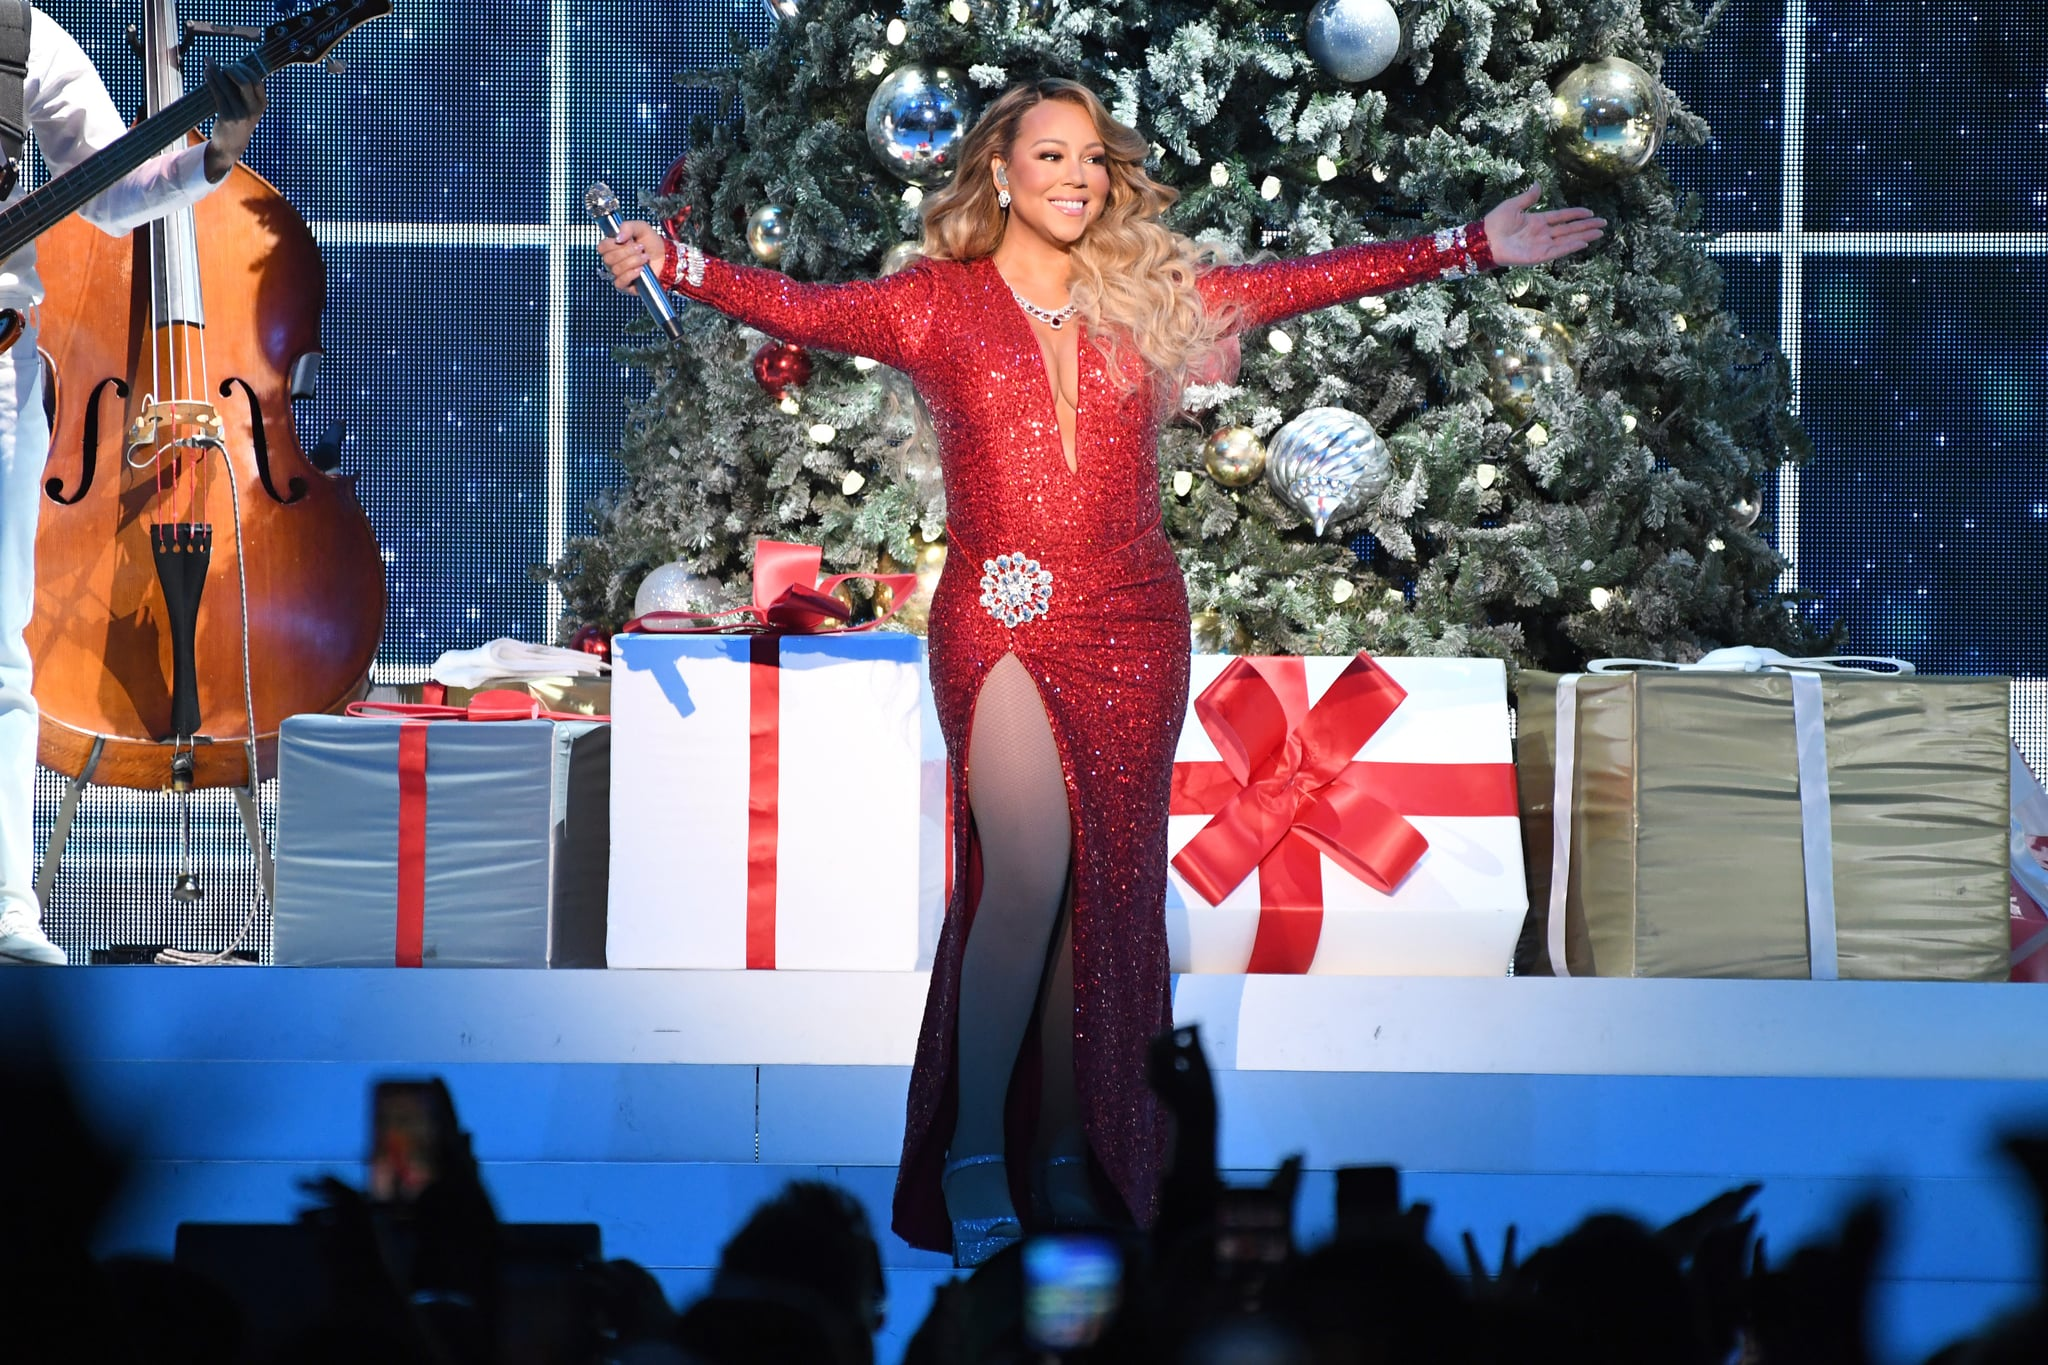 NEW YORK, NEW YORK - DECEMBER 15:  Mariah Carey performs onstage during her